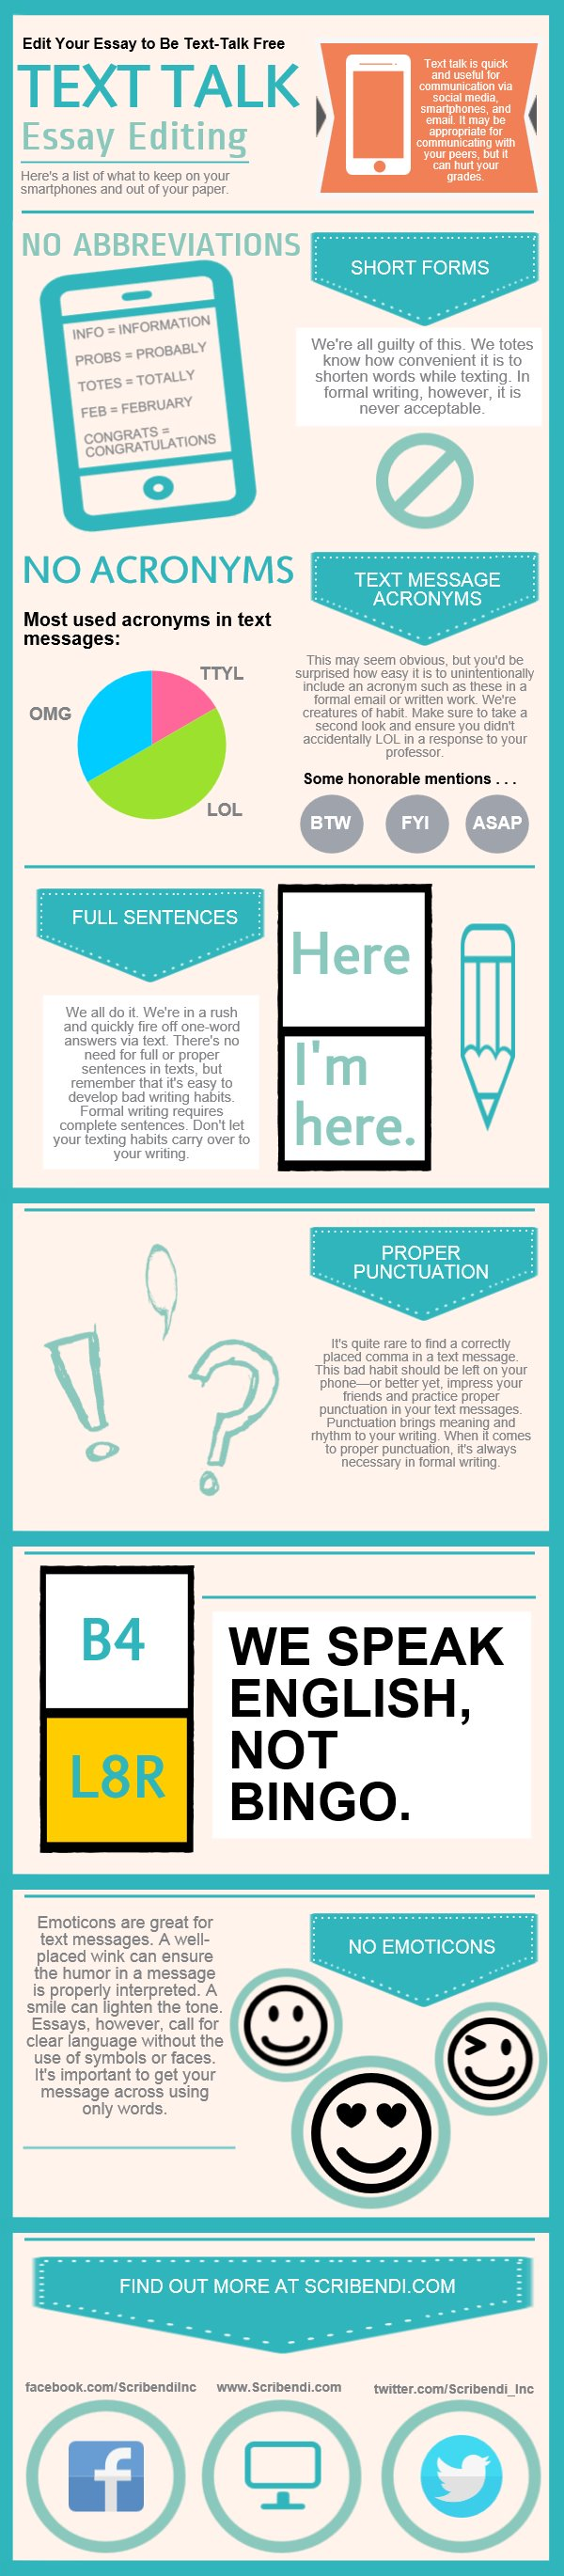 edit your essay to be text talk com com s infographic about making sure your essay editing includes eliminating text talk